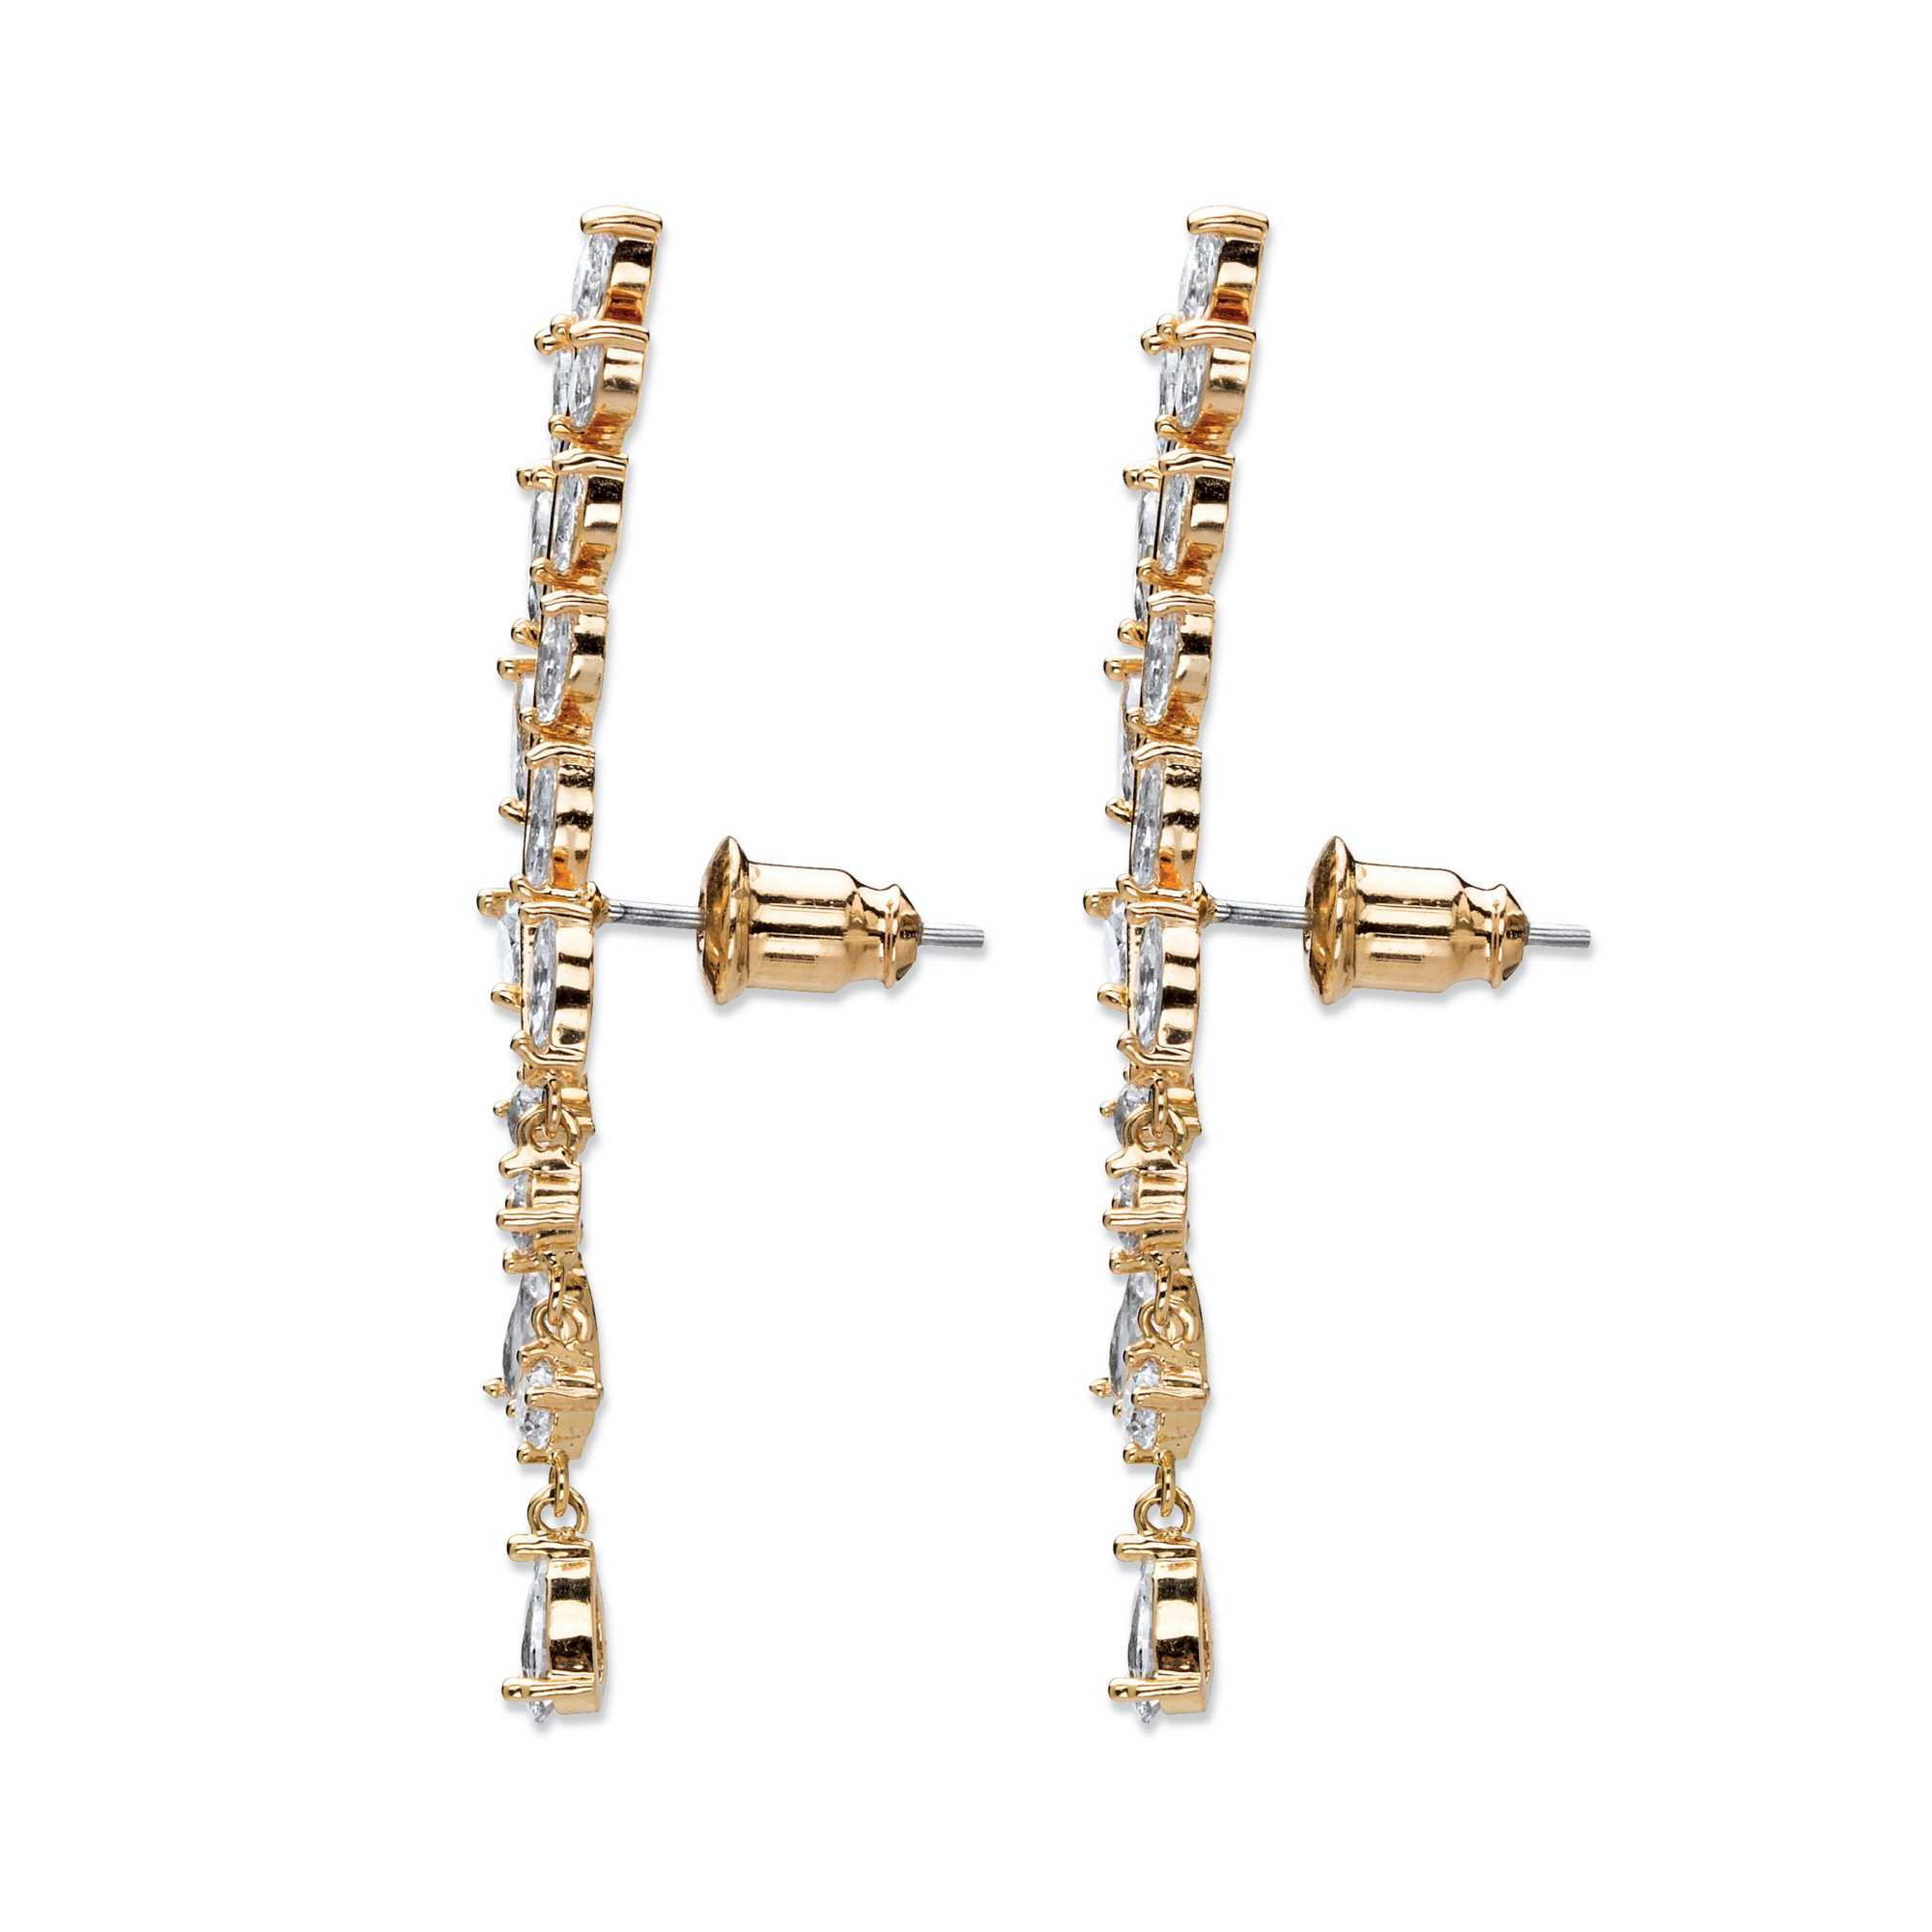 Marquise-Cut Crystal Ear Climber Earrings in Gold Tone with Round and Pear Drop Accents